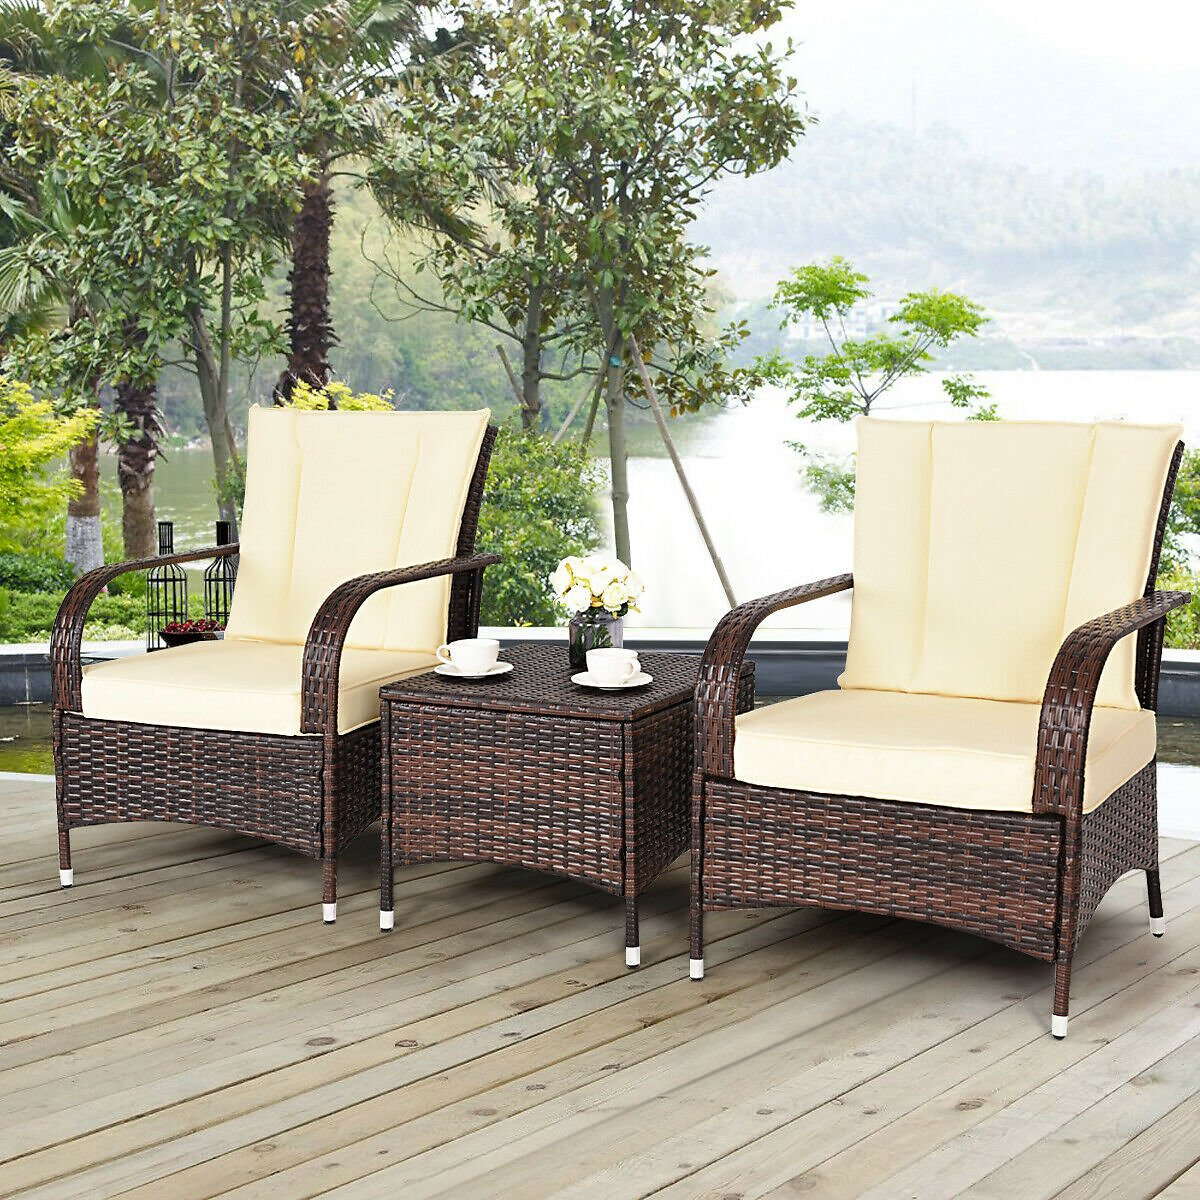 Costway 3PCS Outdoor Patio Mix Brown Rattan Wicker Furniture Set with Beige & Red Cushions